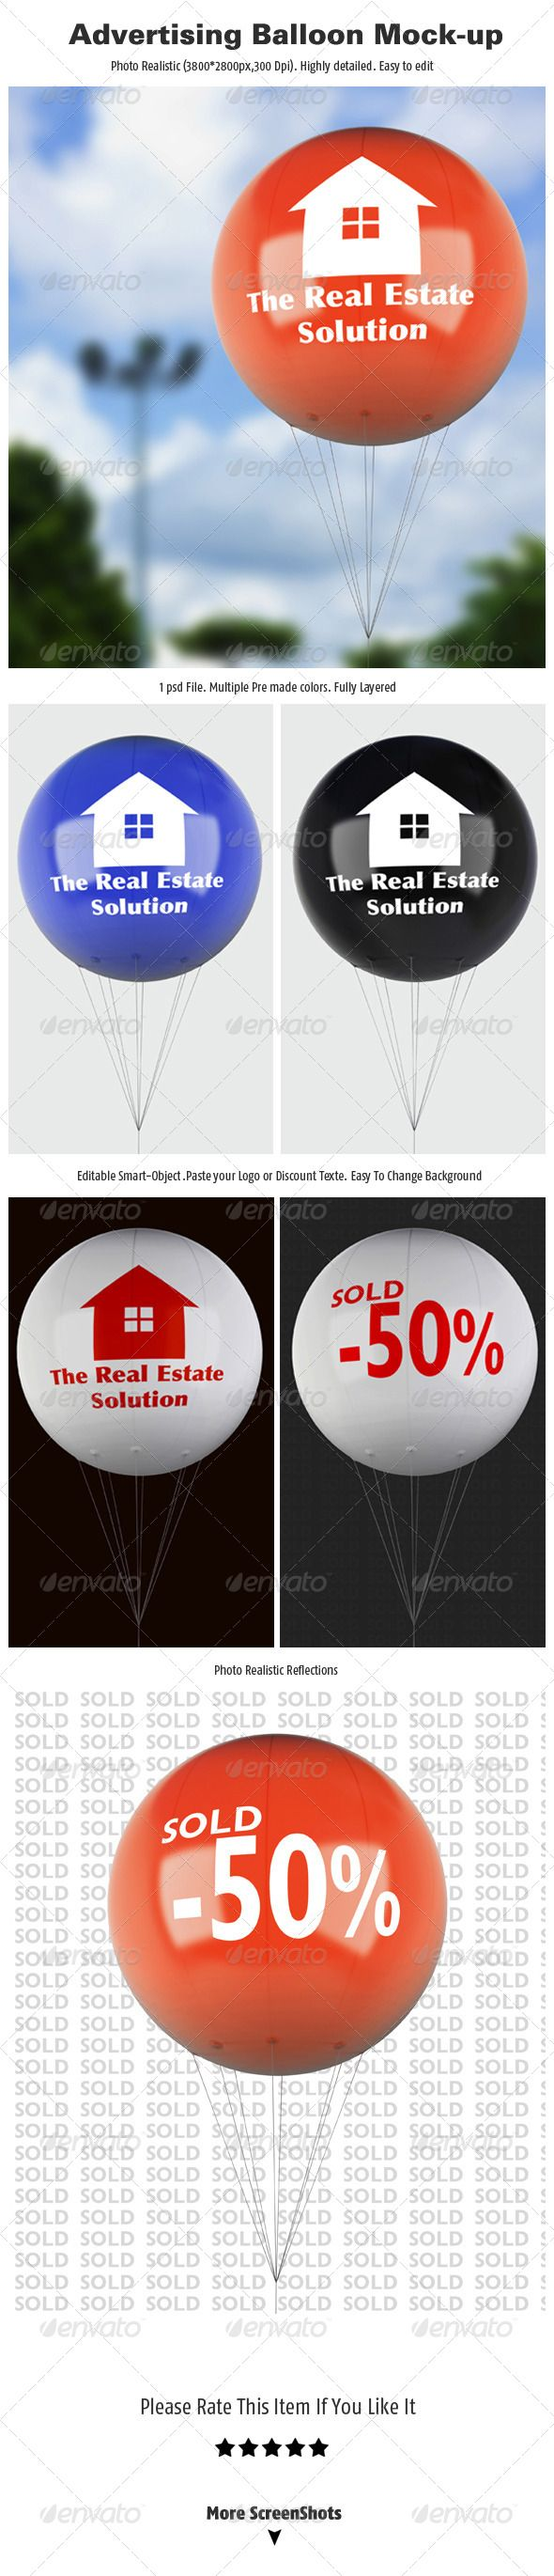 Advertising Balloon Mock-up  #GraphicRiver        Features  Organized Layers   Easy and fast editing with smart objects  1 psd file  photo-Realistic Rendering  many premade colored Balloons   high resolution  changeable Background   background image not included in download      Created: 24June13 GraphicsFilesIncluded: PhotoshopPSD HighResolution: Yes Layered: Yes MinimumAdobeCSVersion: CS3 PixelDimensions: 3800x2800 PrintDimensions: 32x23 Tags: advertising #balloon #balloons #display #logo…